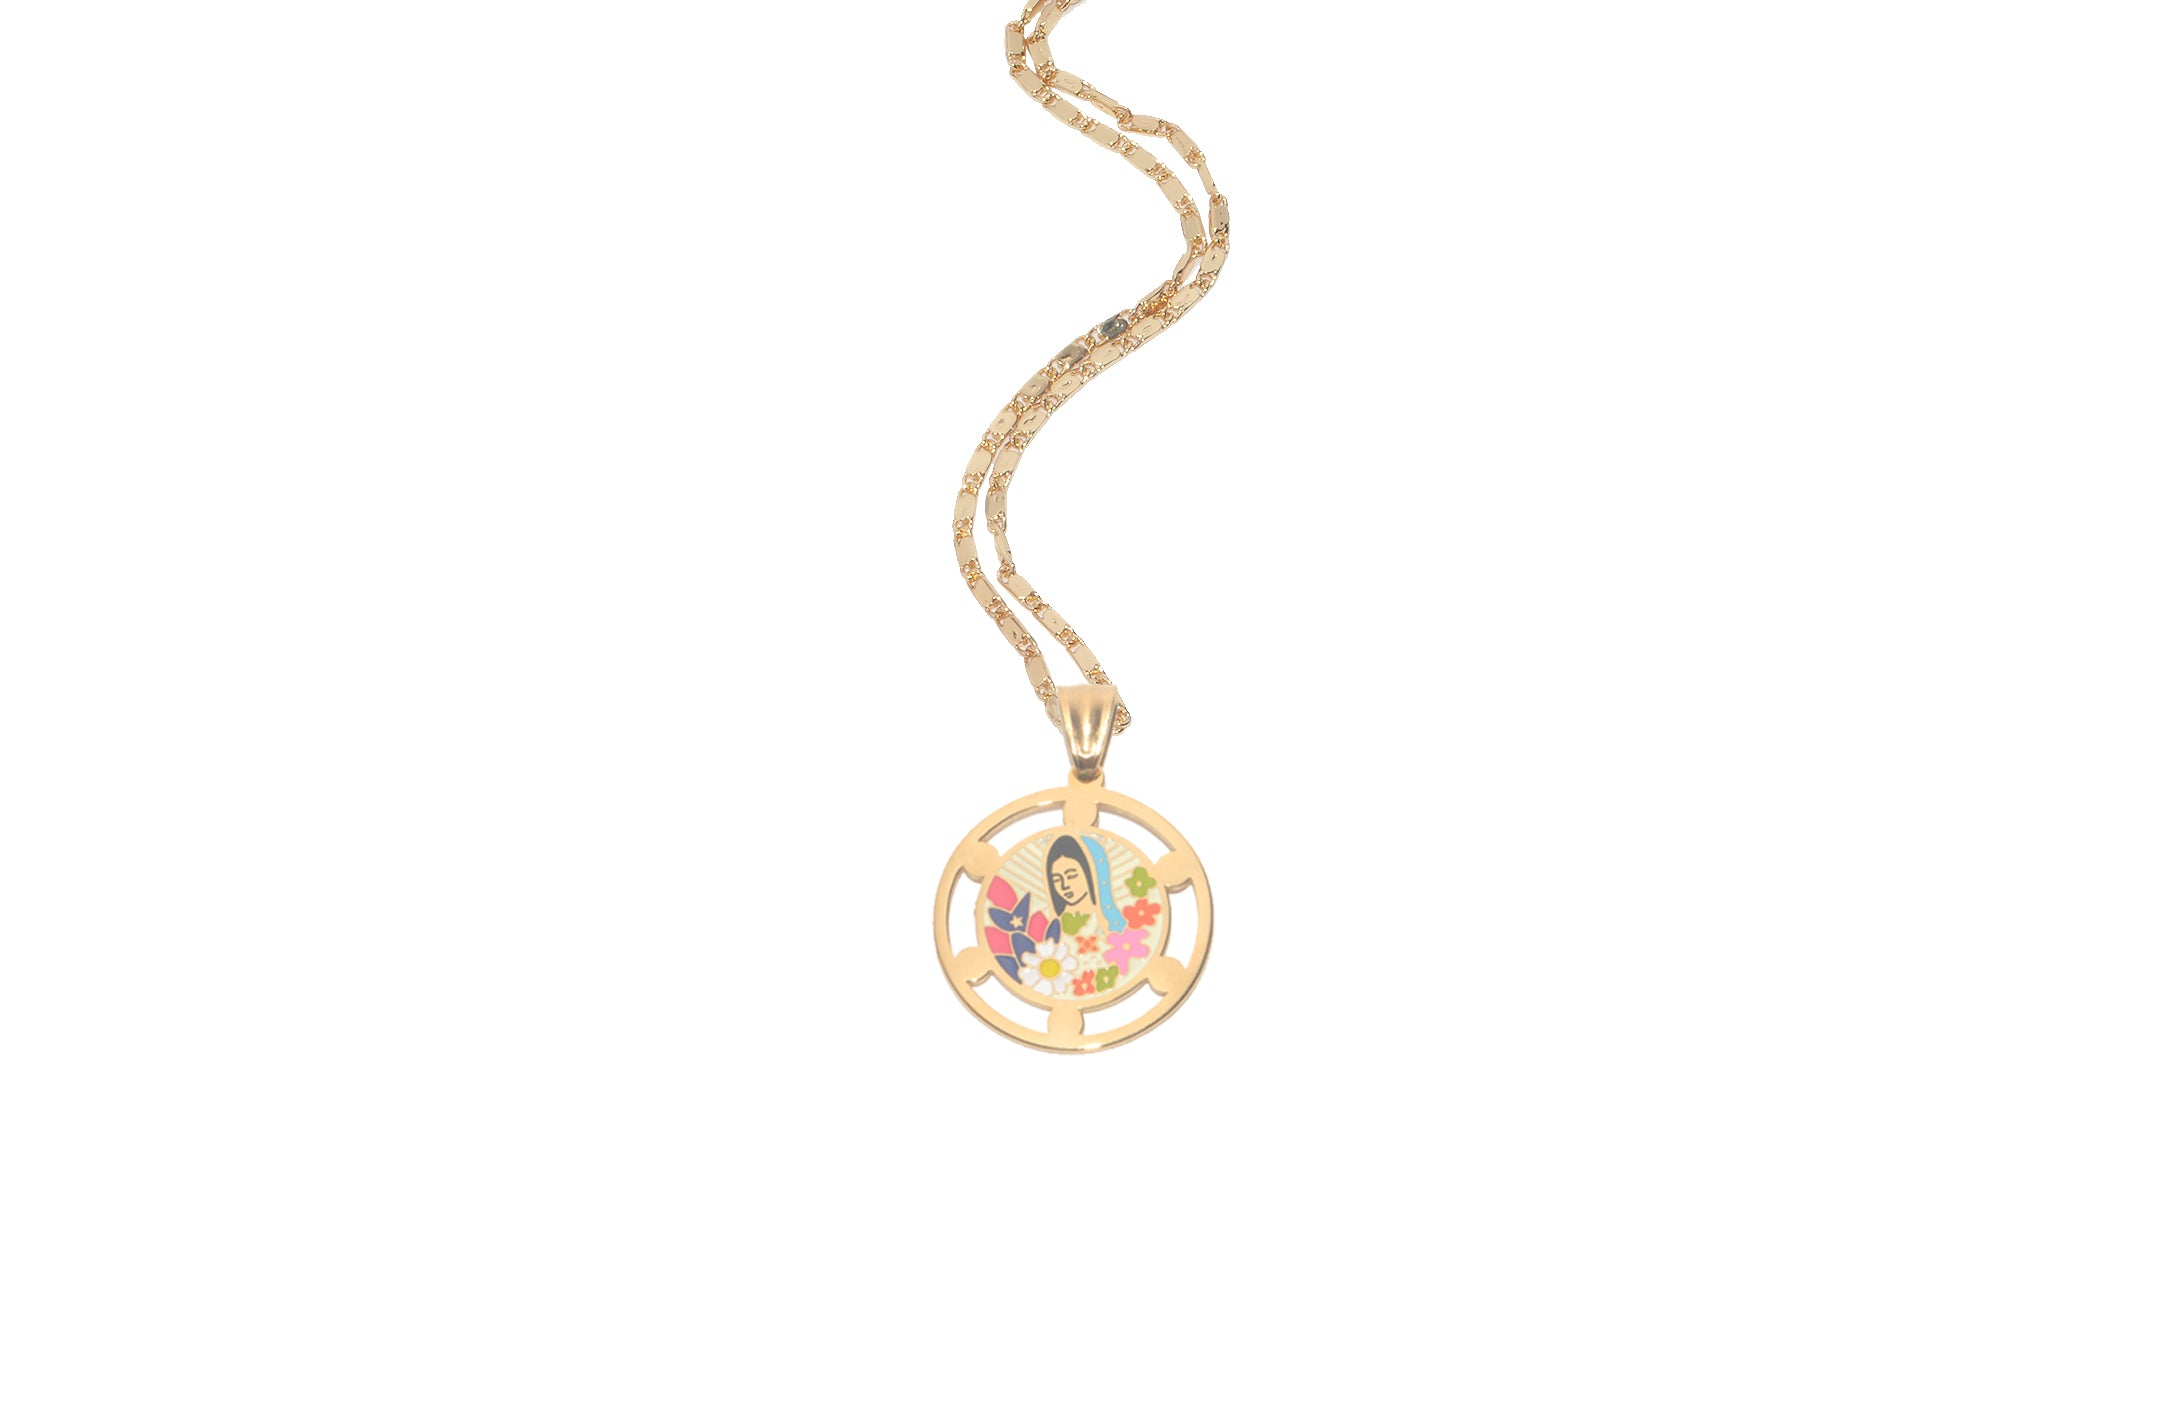 Virgen de Maravilla Necklace